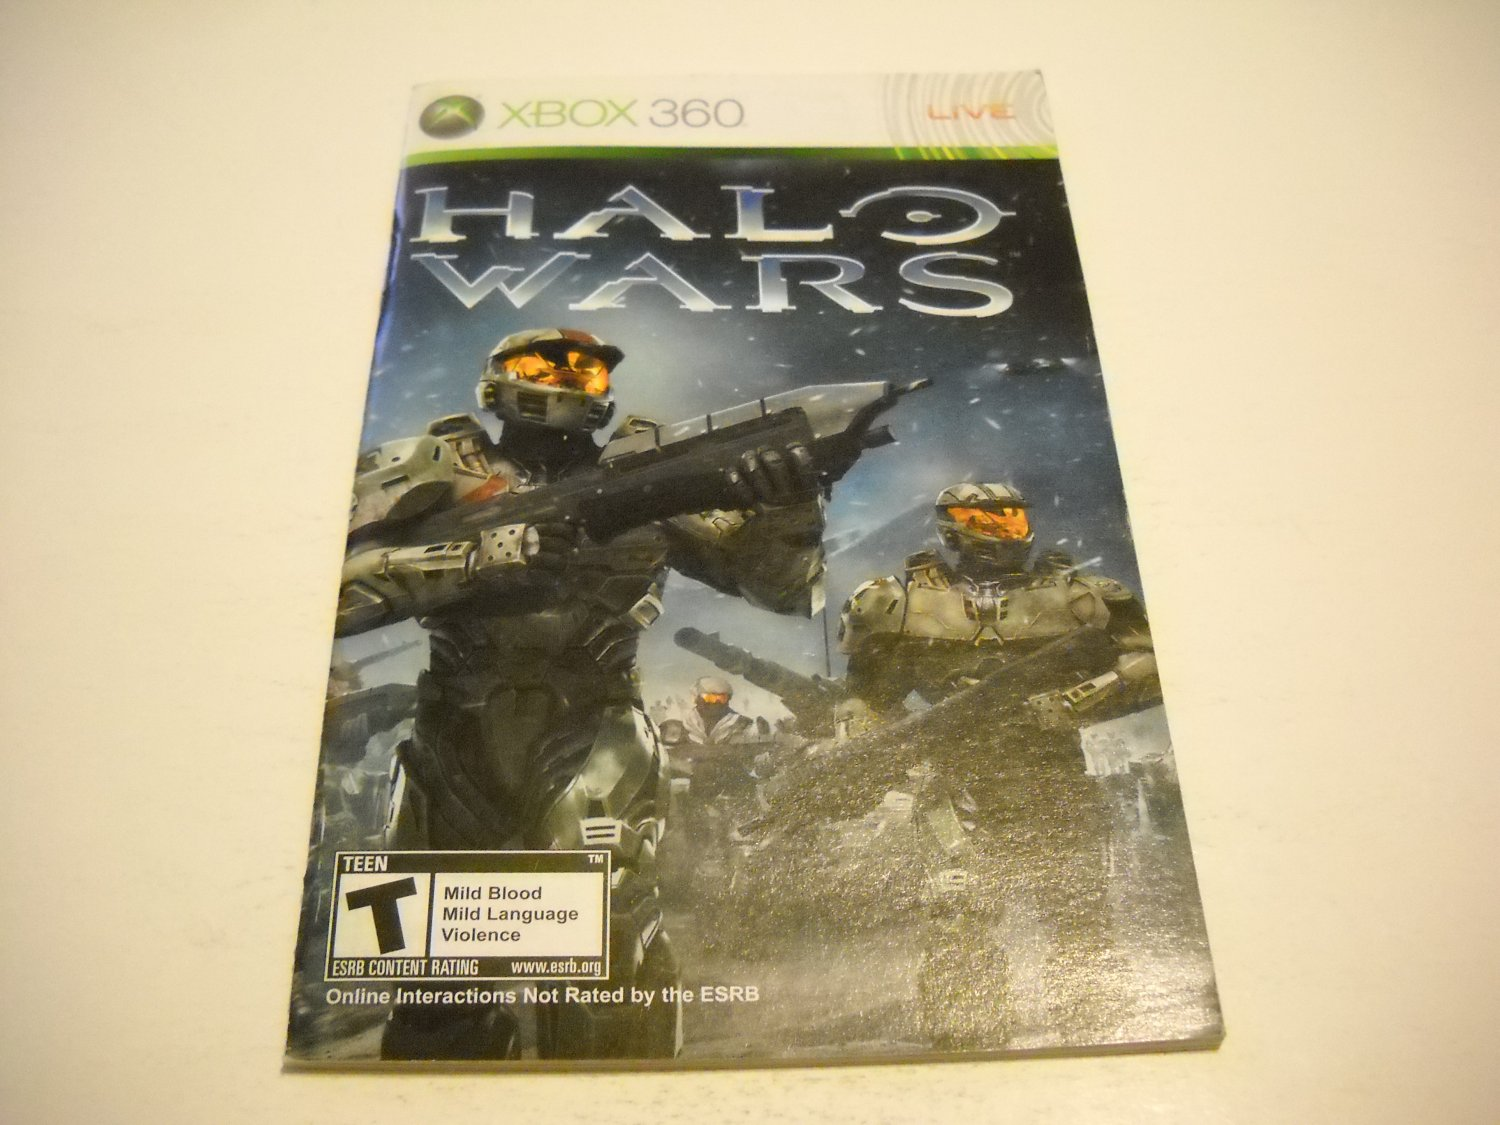 Manual ONLY ~  for Halo Wars   - Xbox 360 Instruction Booklet